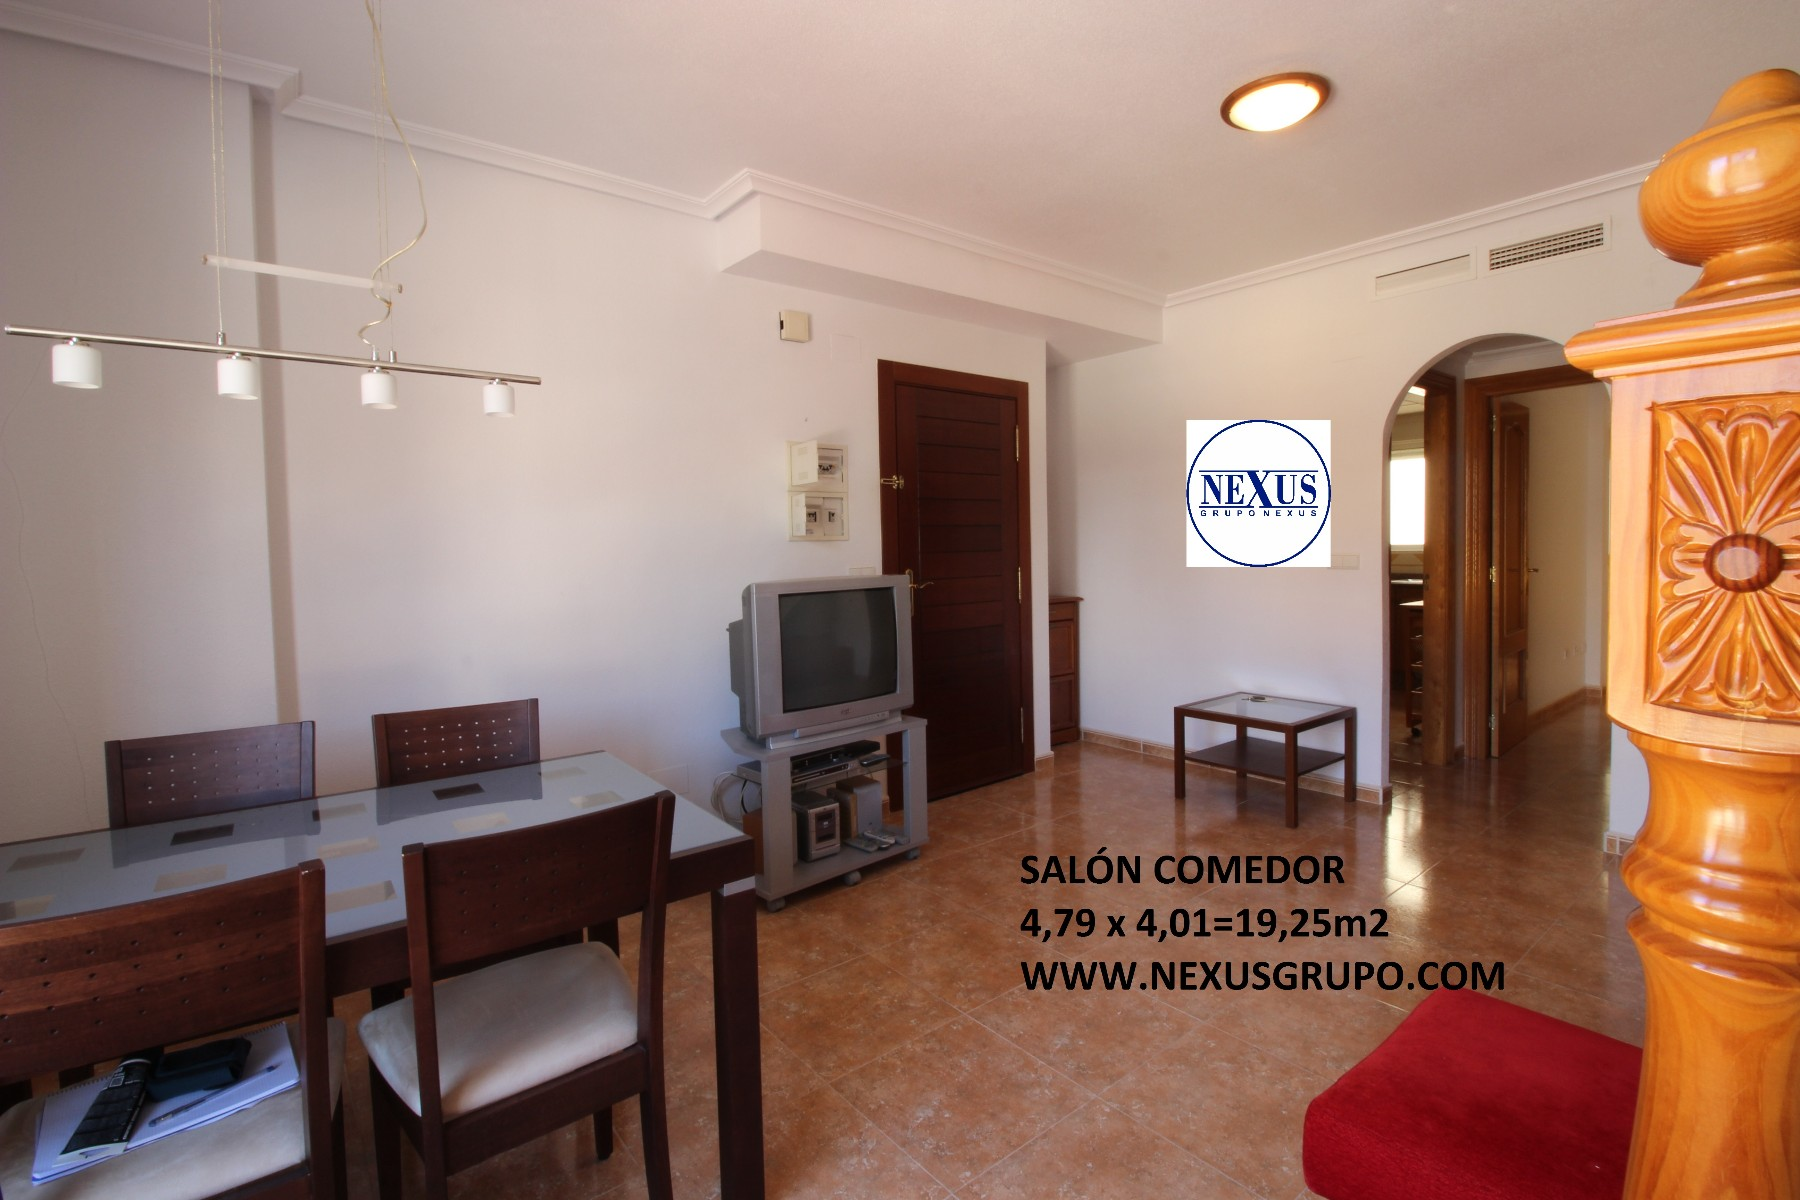 Nexus Group Real Estate Agency sells excellent duplex apartment. in Nexus Grupo